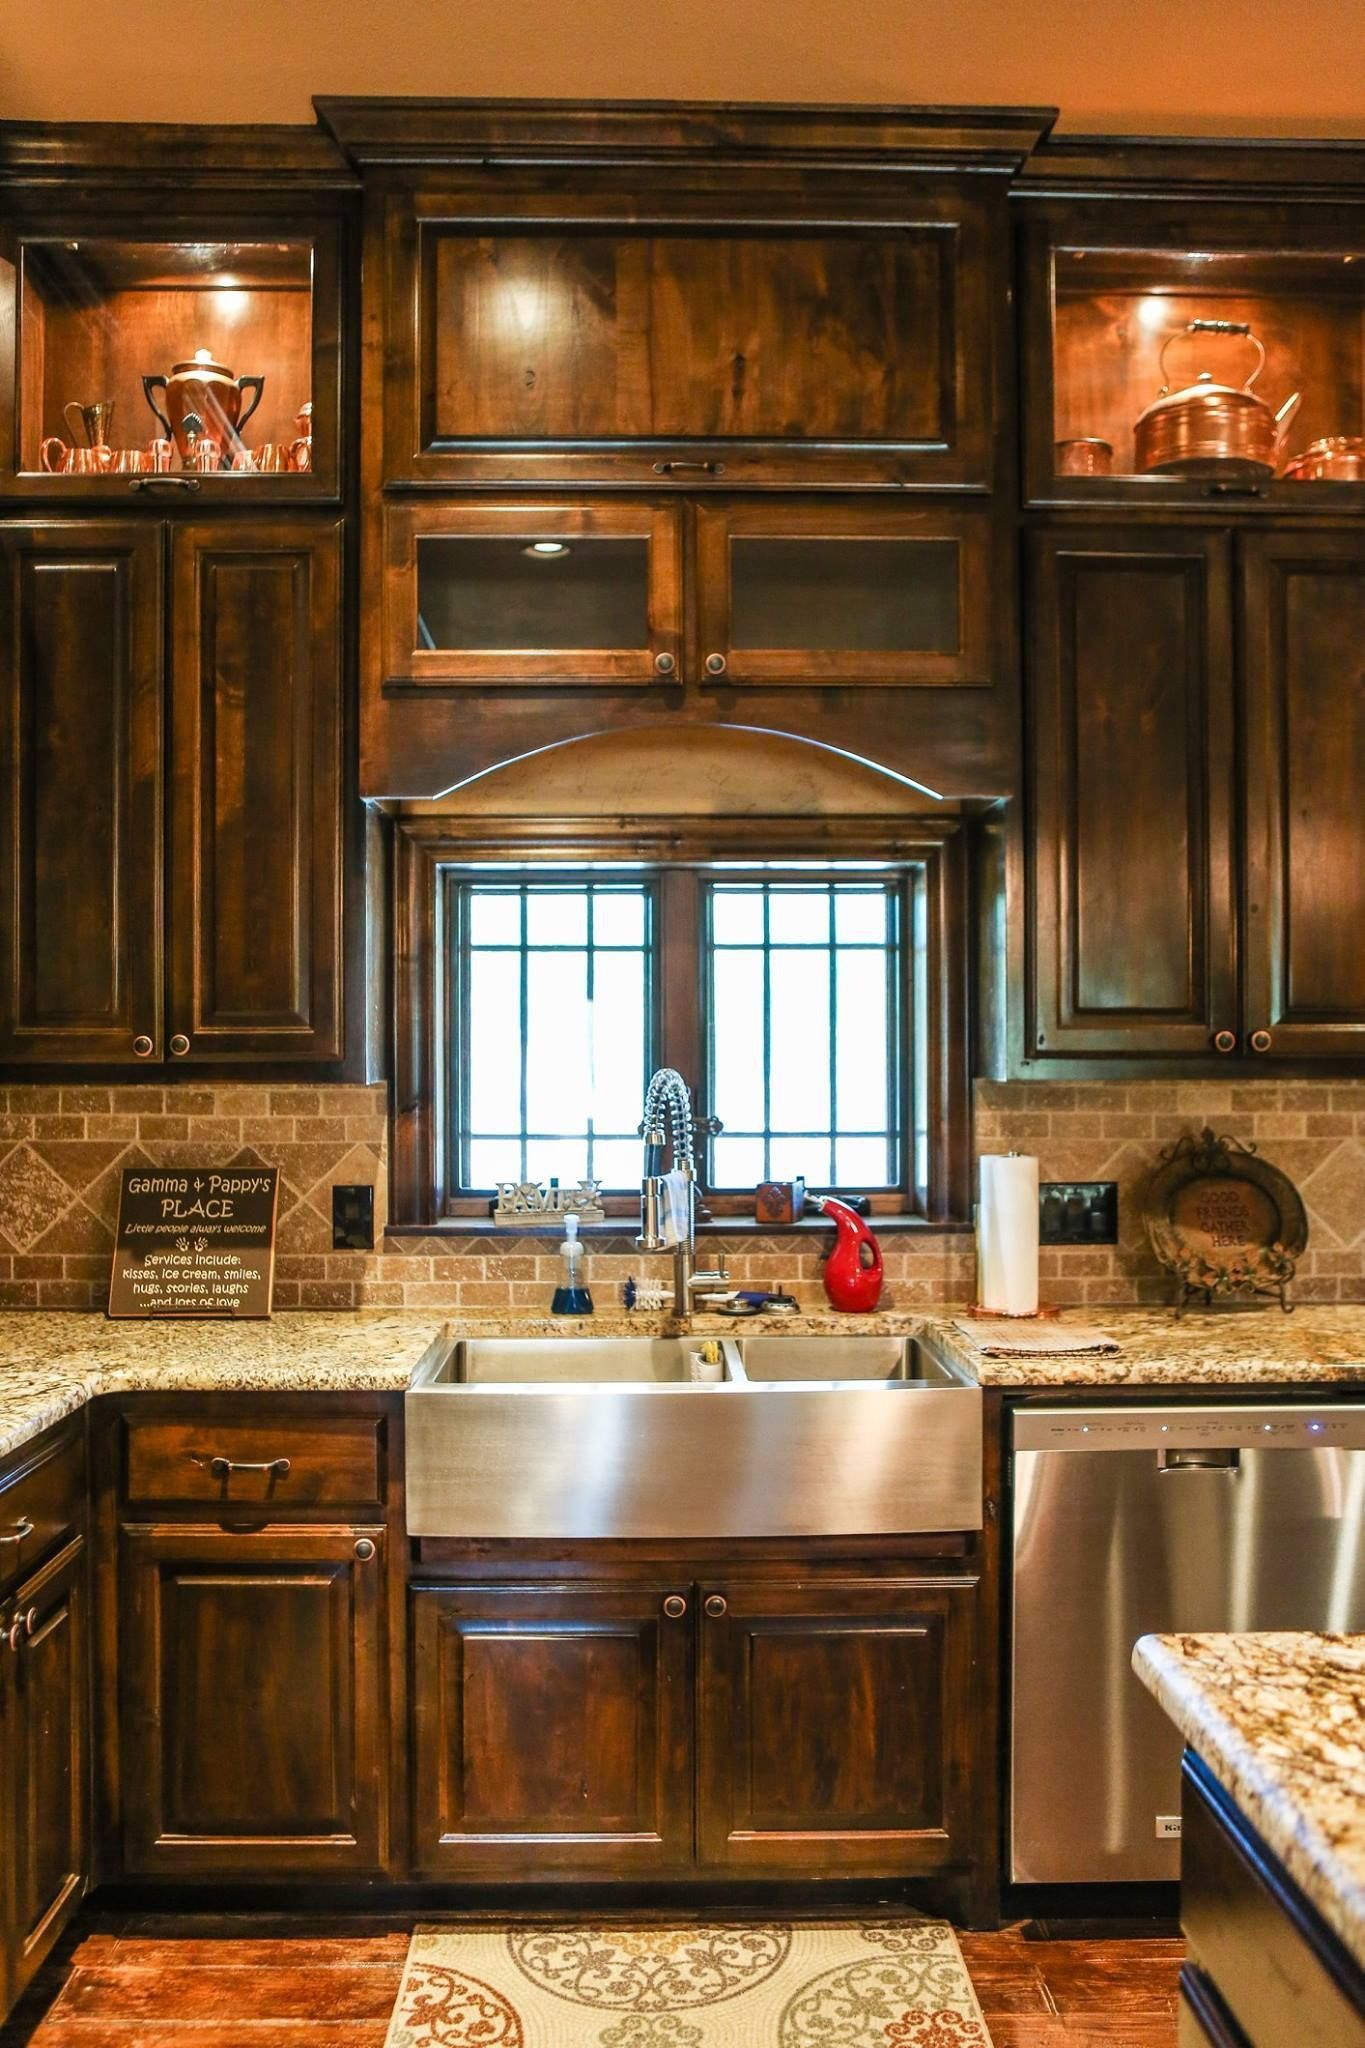 rustic kitchen cabinet designs 2021 in 2020 rustic kitchen cabinets rustic kitchen tuscan on kitchen ideas cabinets id=54435